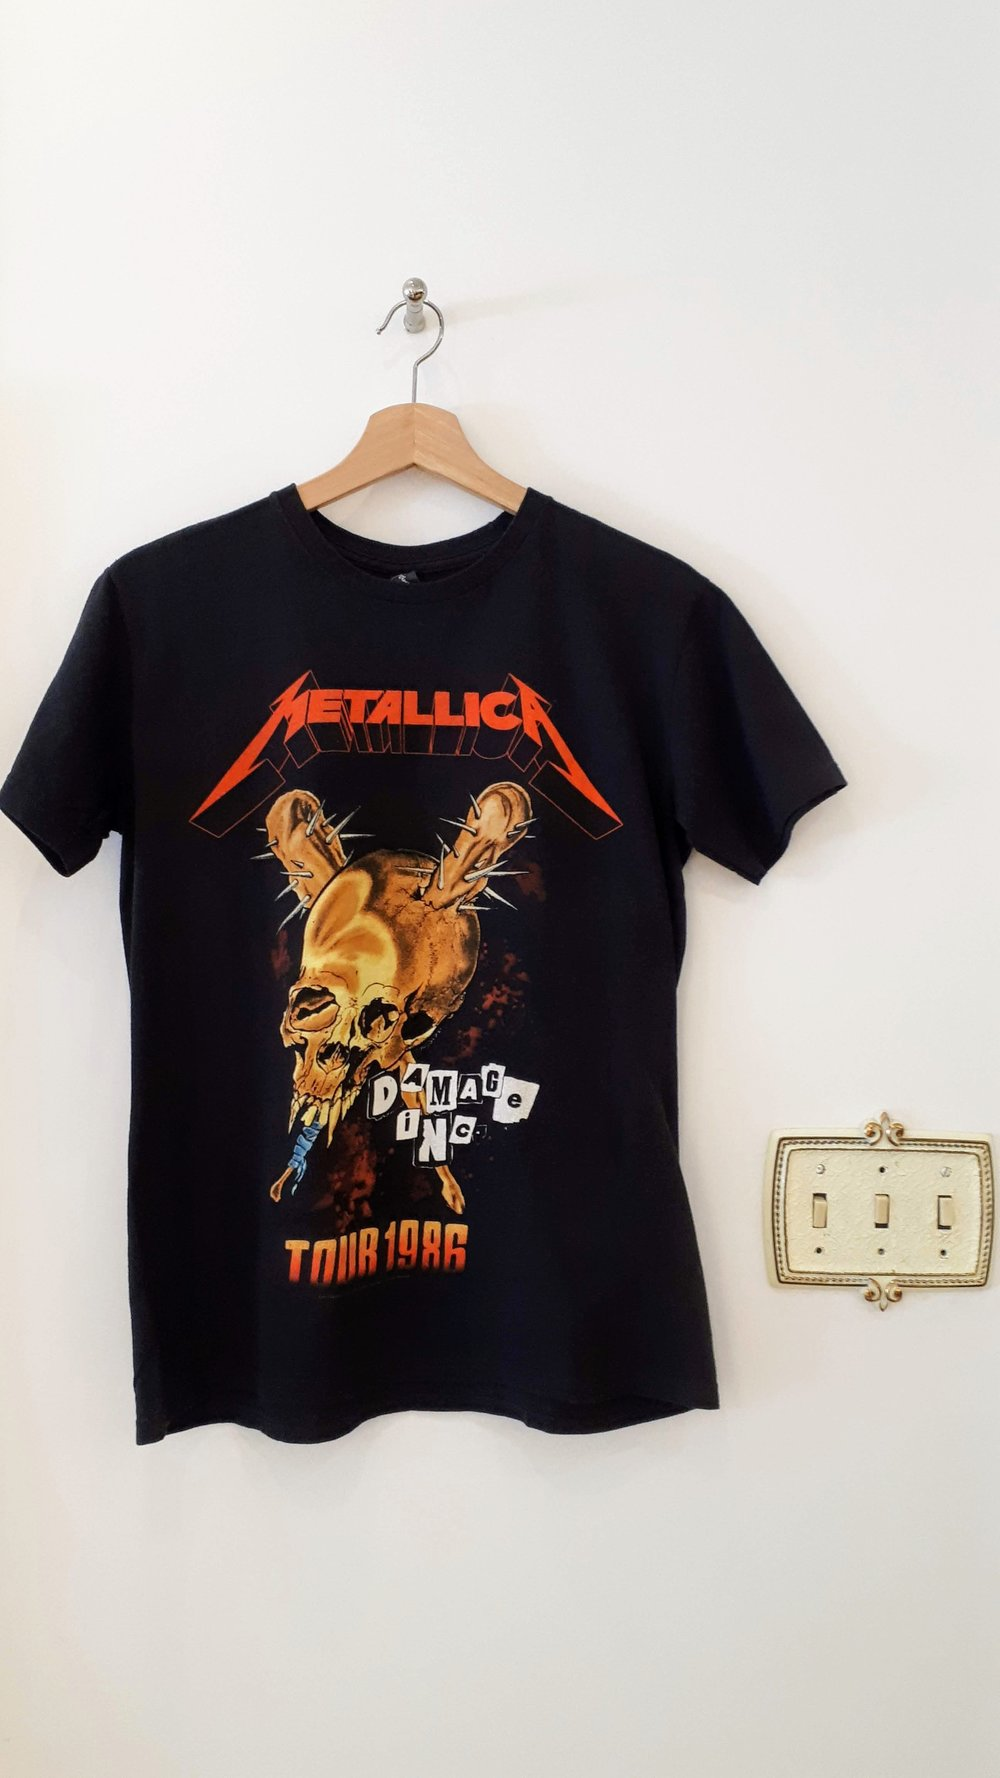 Metallica T; Size M, $24 (on sale for $12!)